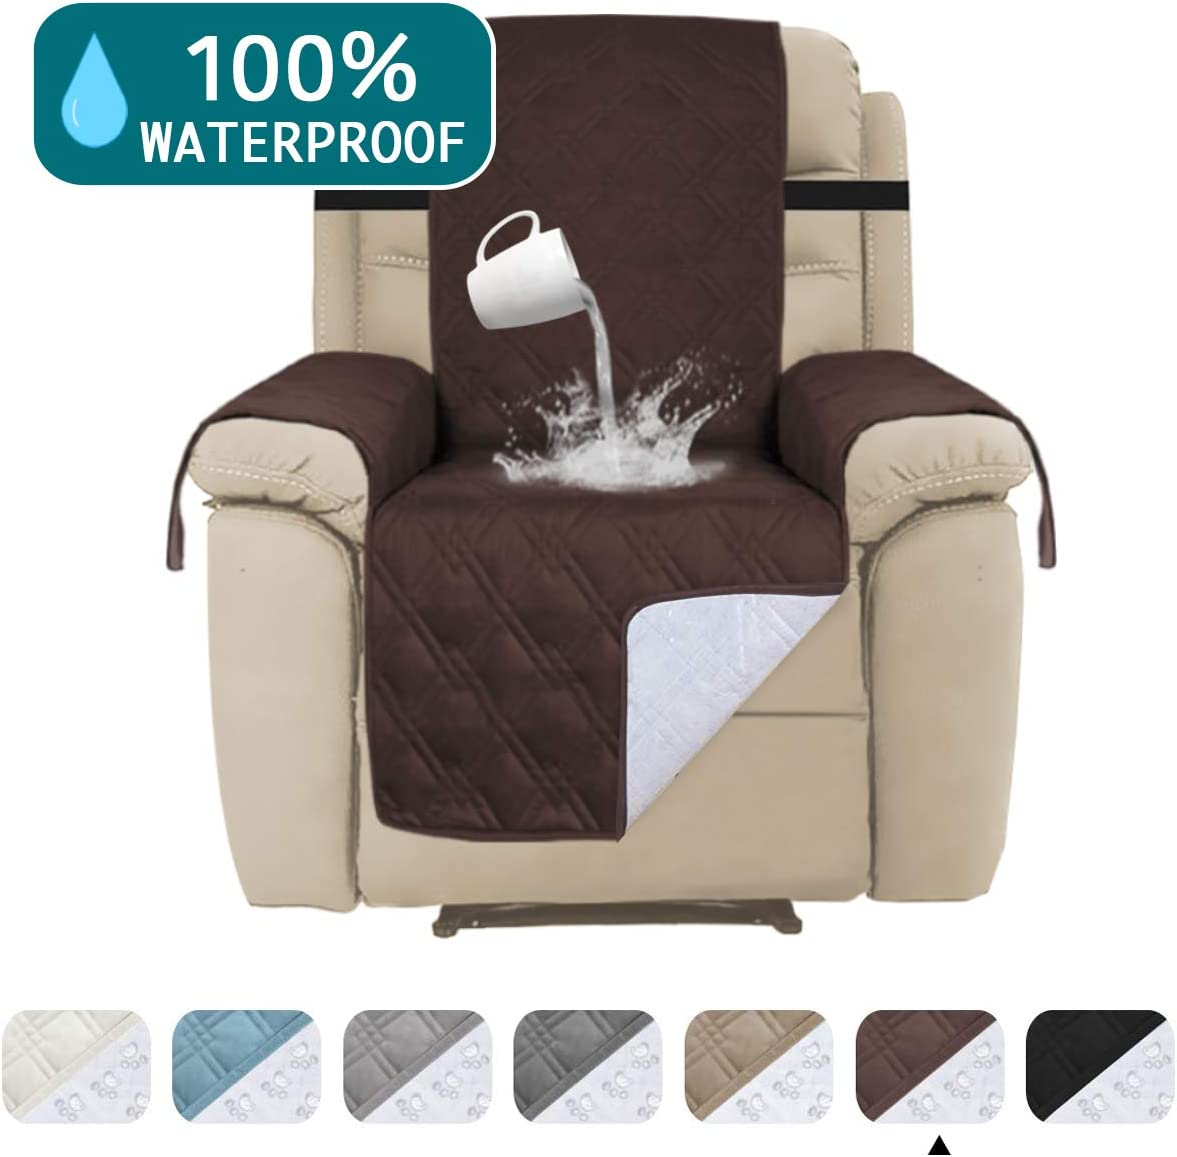 """100% Water Proof Recliner Chair Covers Pet Furniture Cover for Leather Recliner Protector Slip Covers for Pets Cats Sitting Area Up to 30"""" Couch Covers Non Slip (Oversized Recliner: Brown)"""